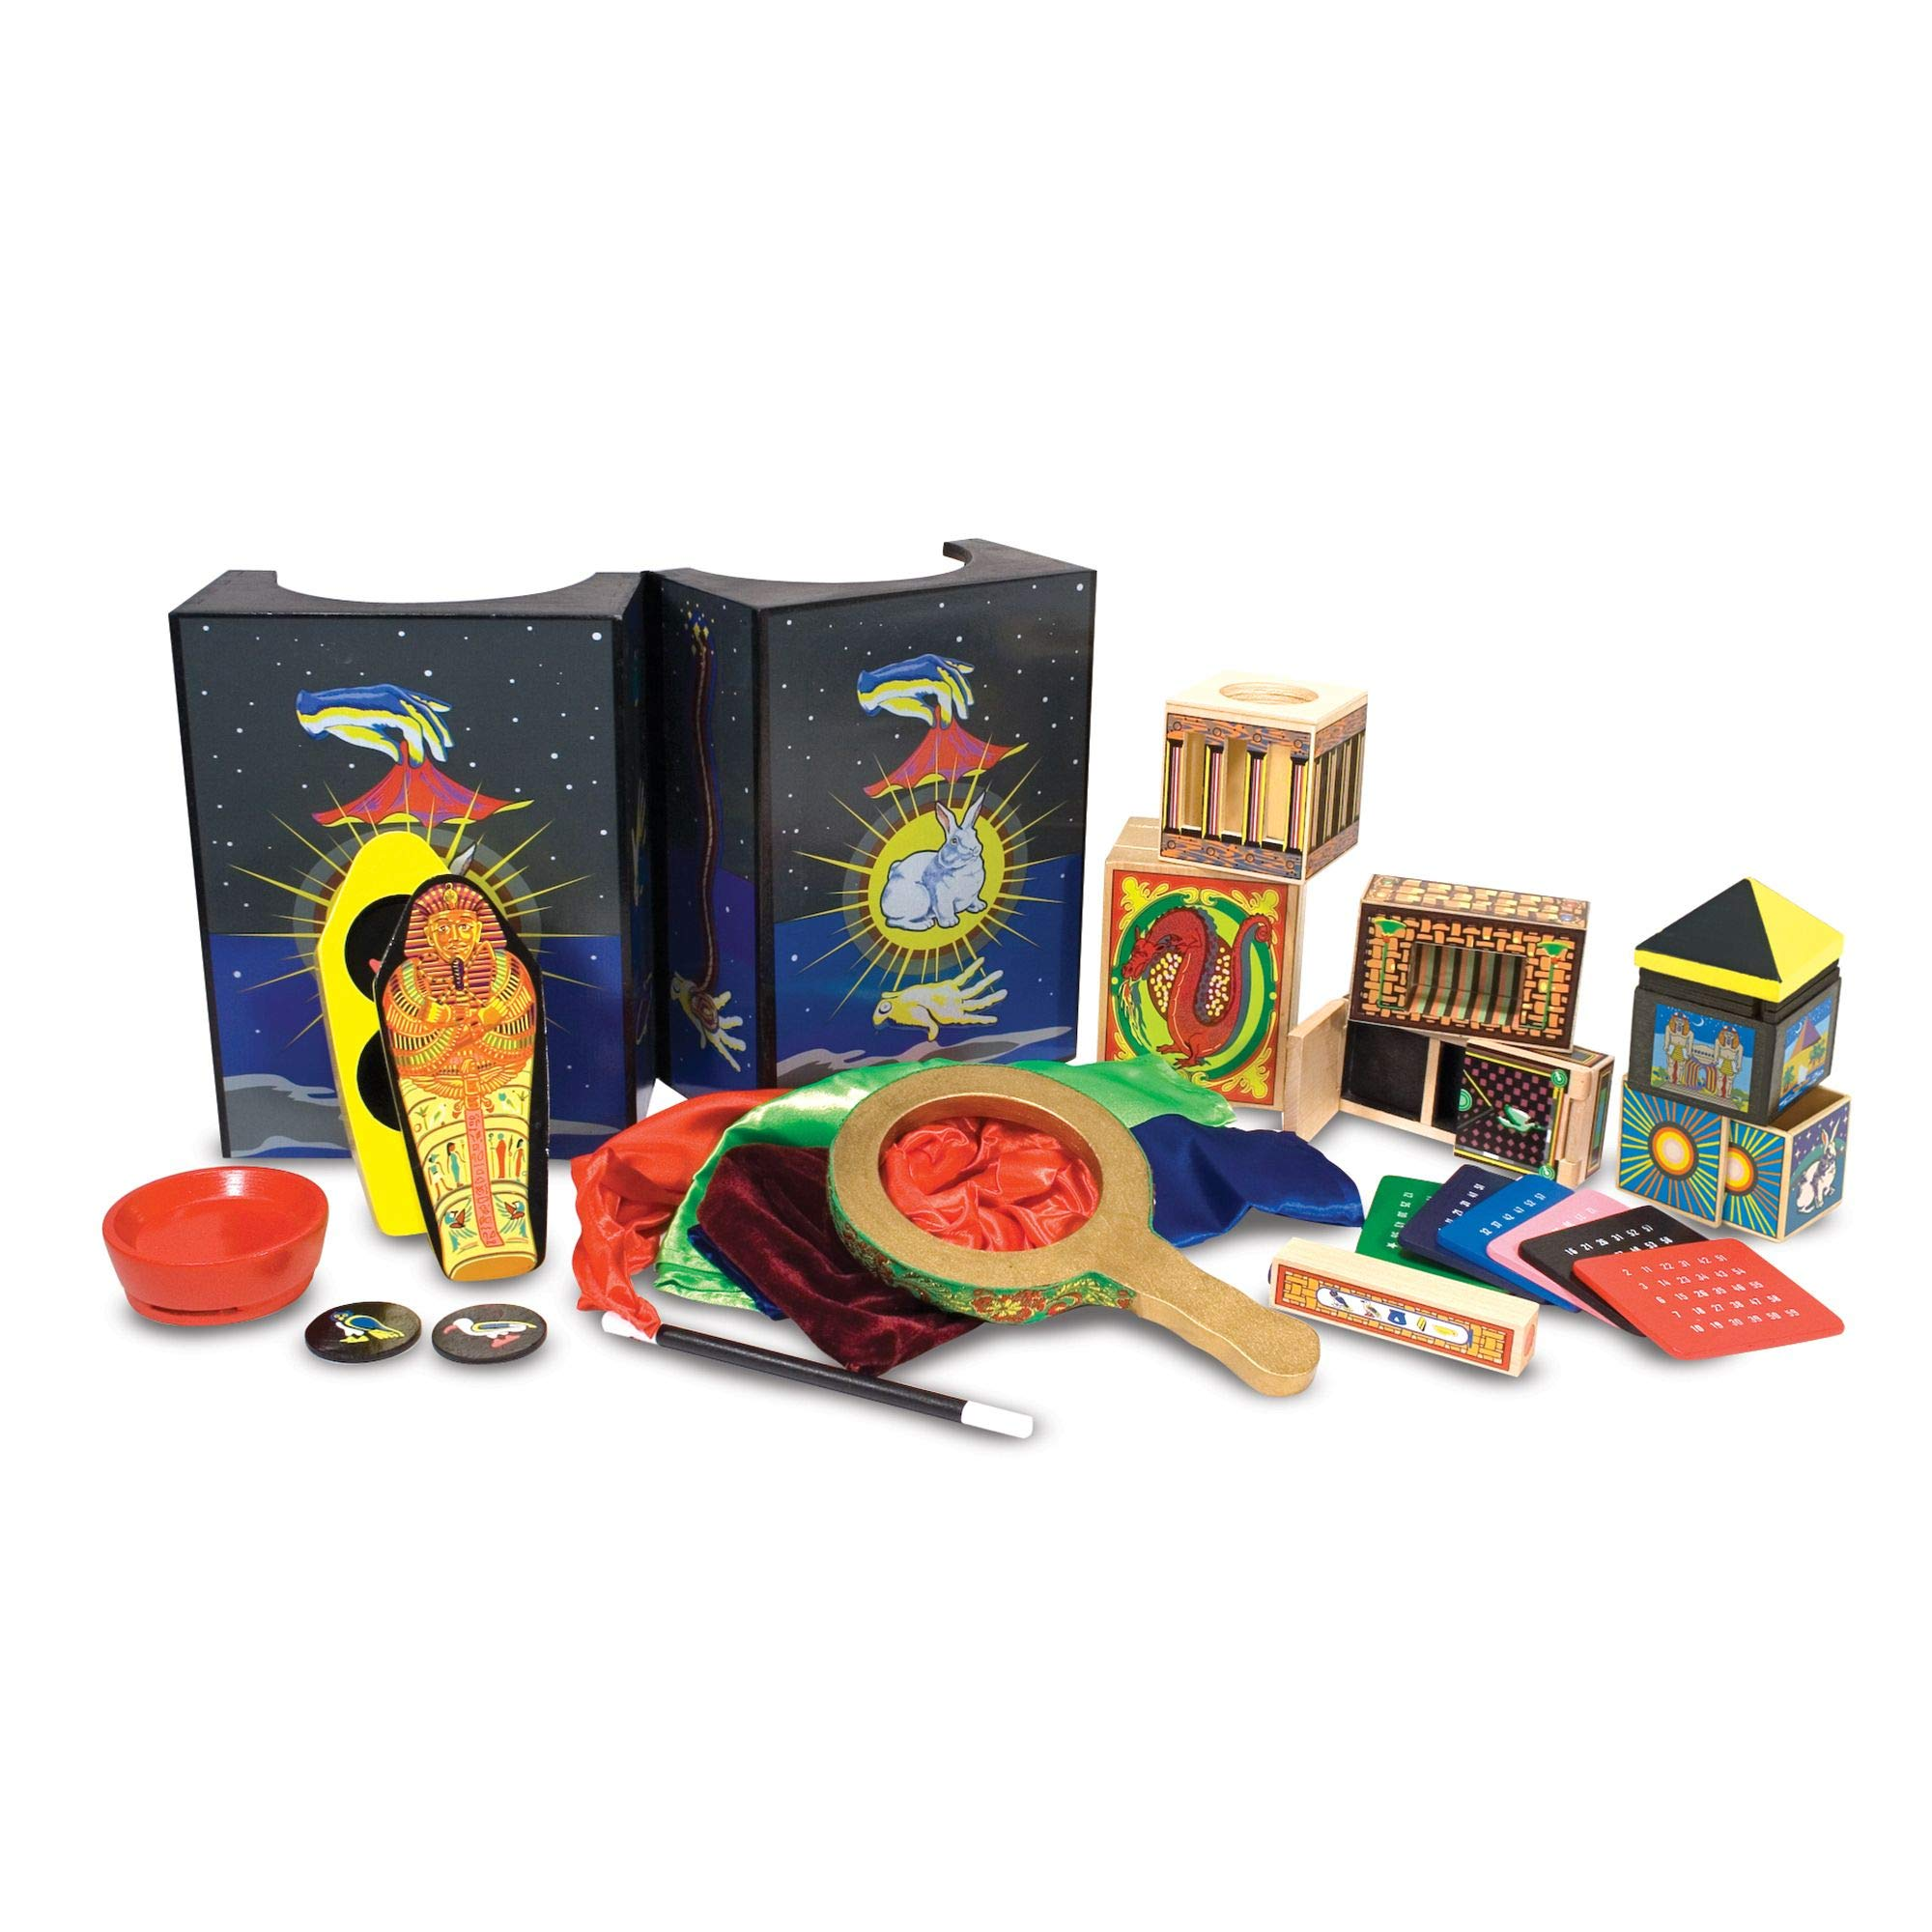 Melissa & Doug Deluxe Solid-Wood Magic Set with 10 Classic Tricks by Melissa & Doug